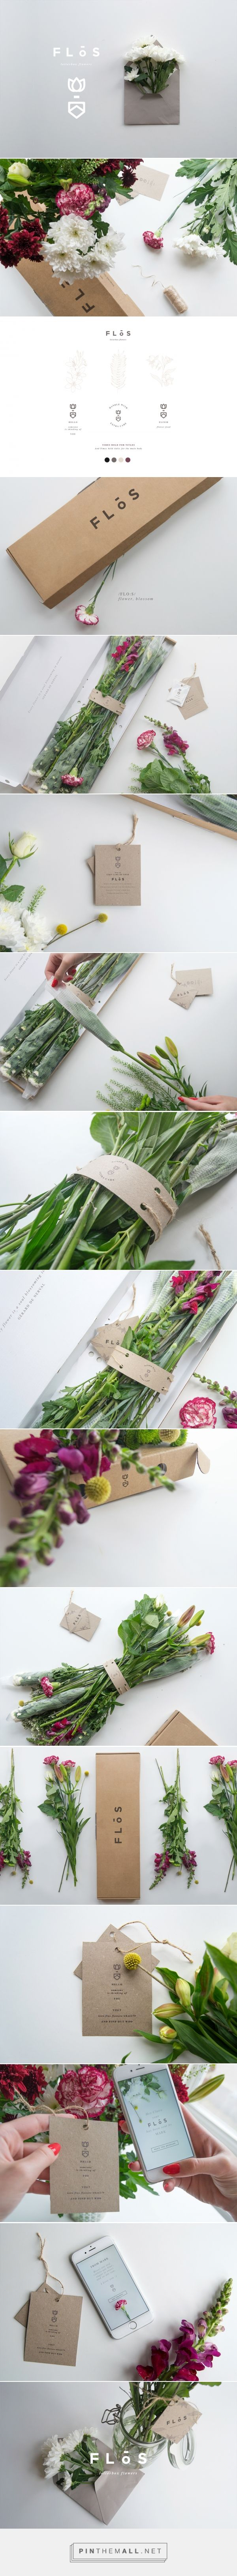 Industrial design logo Fls - Letterbox Flowers Logo Design & Packaging by Giadaland